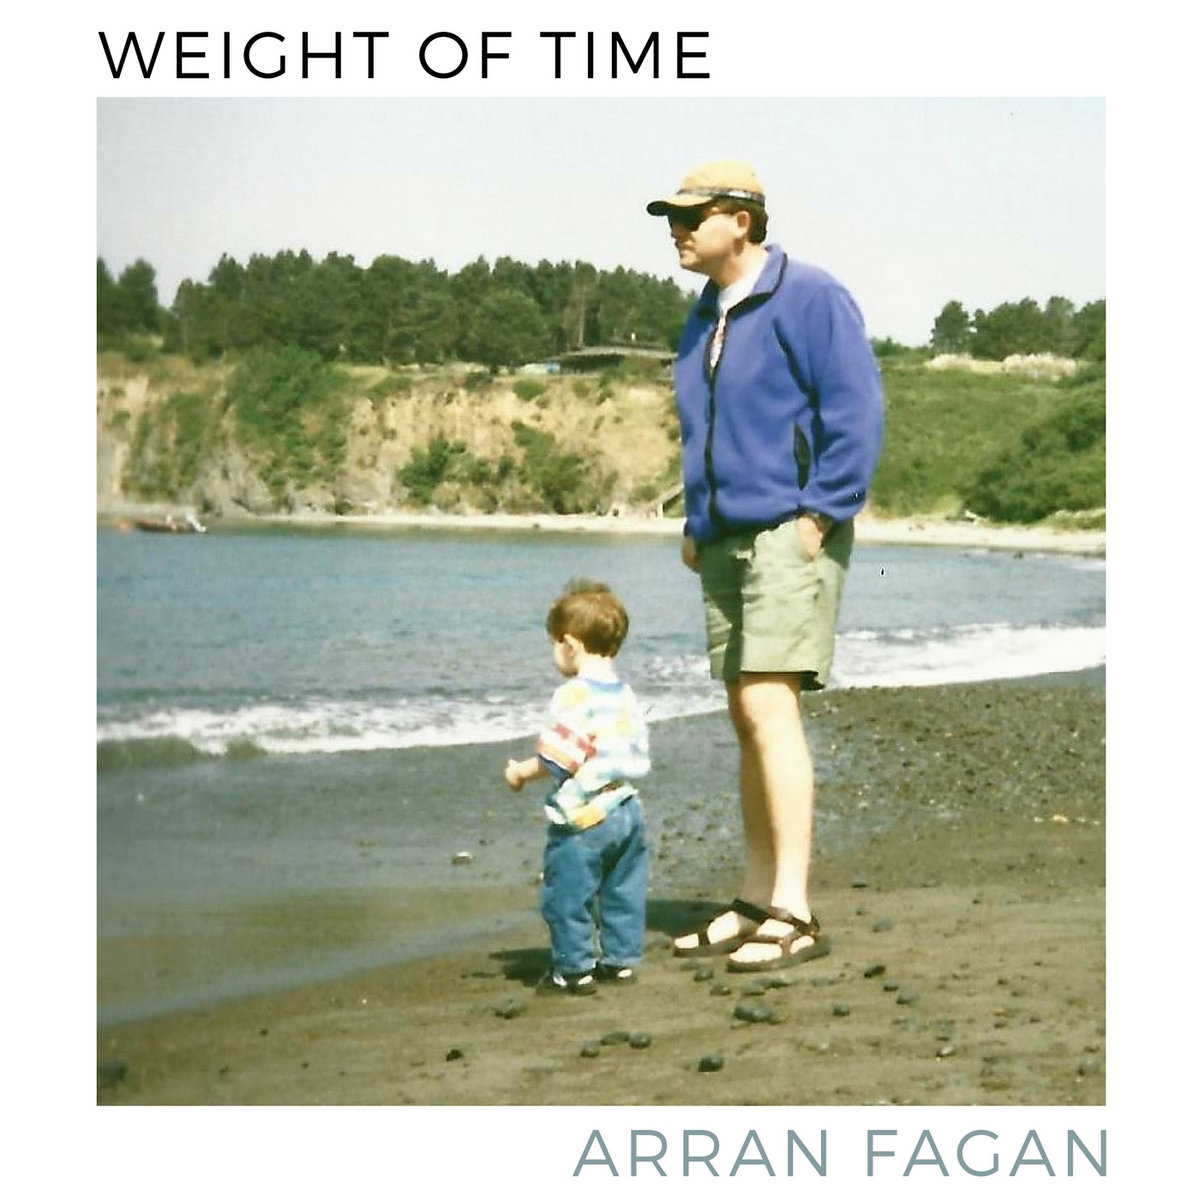 Weight Of Time >> Weight Of Time Arran Fagan